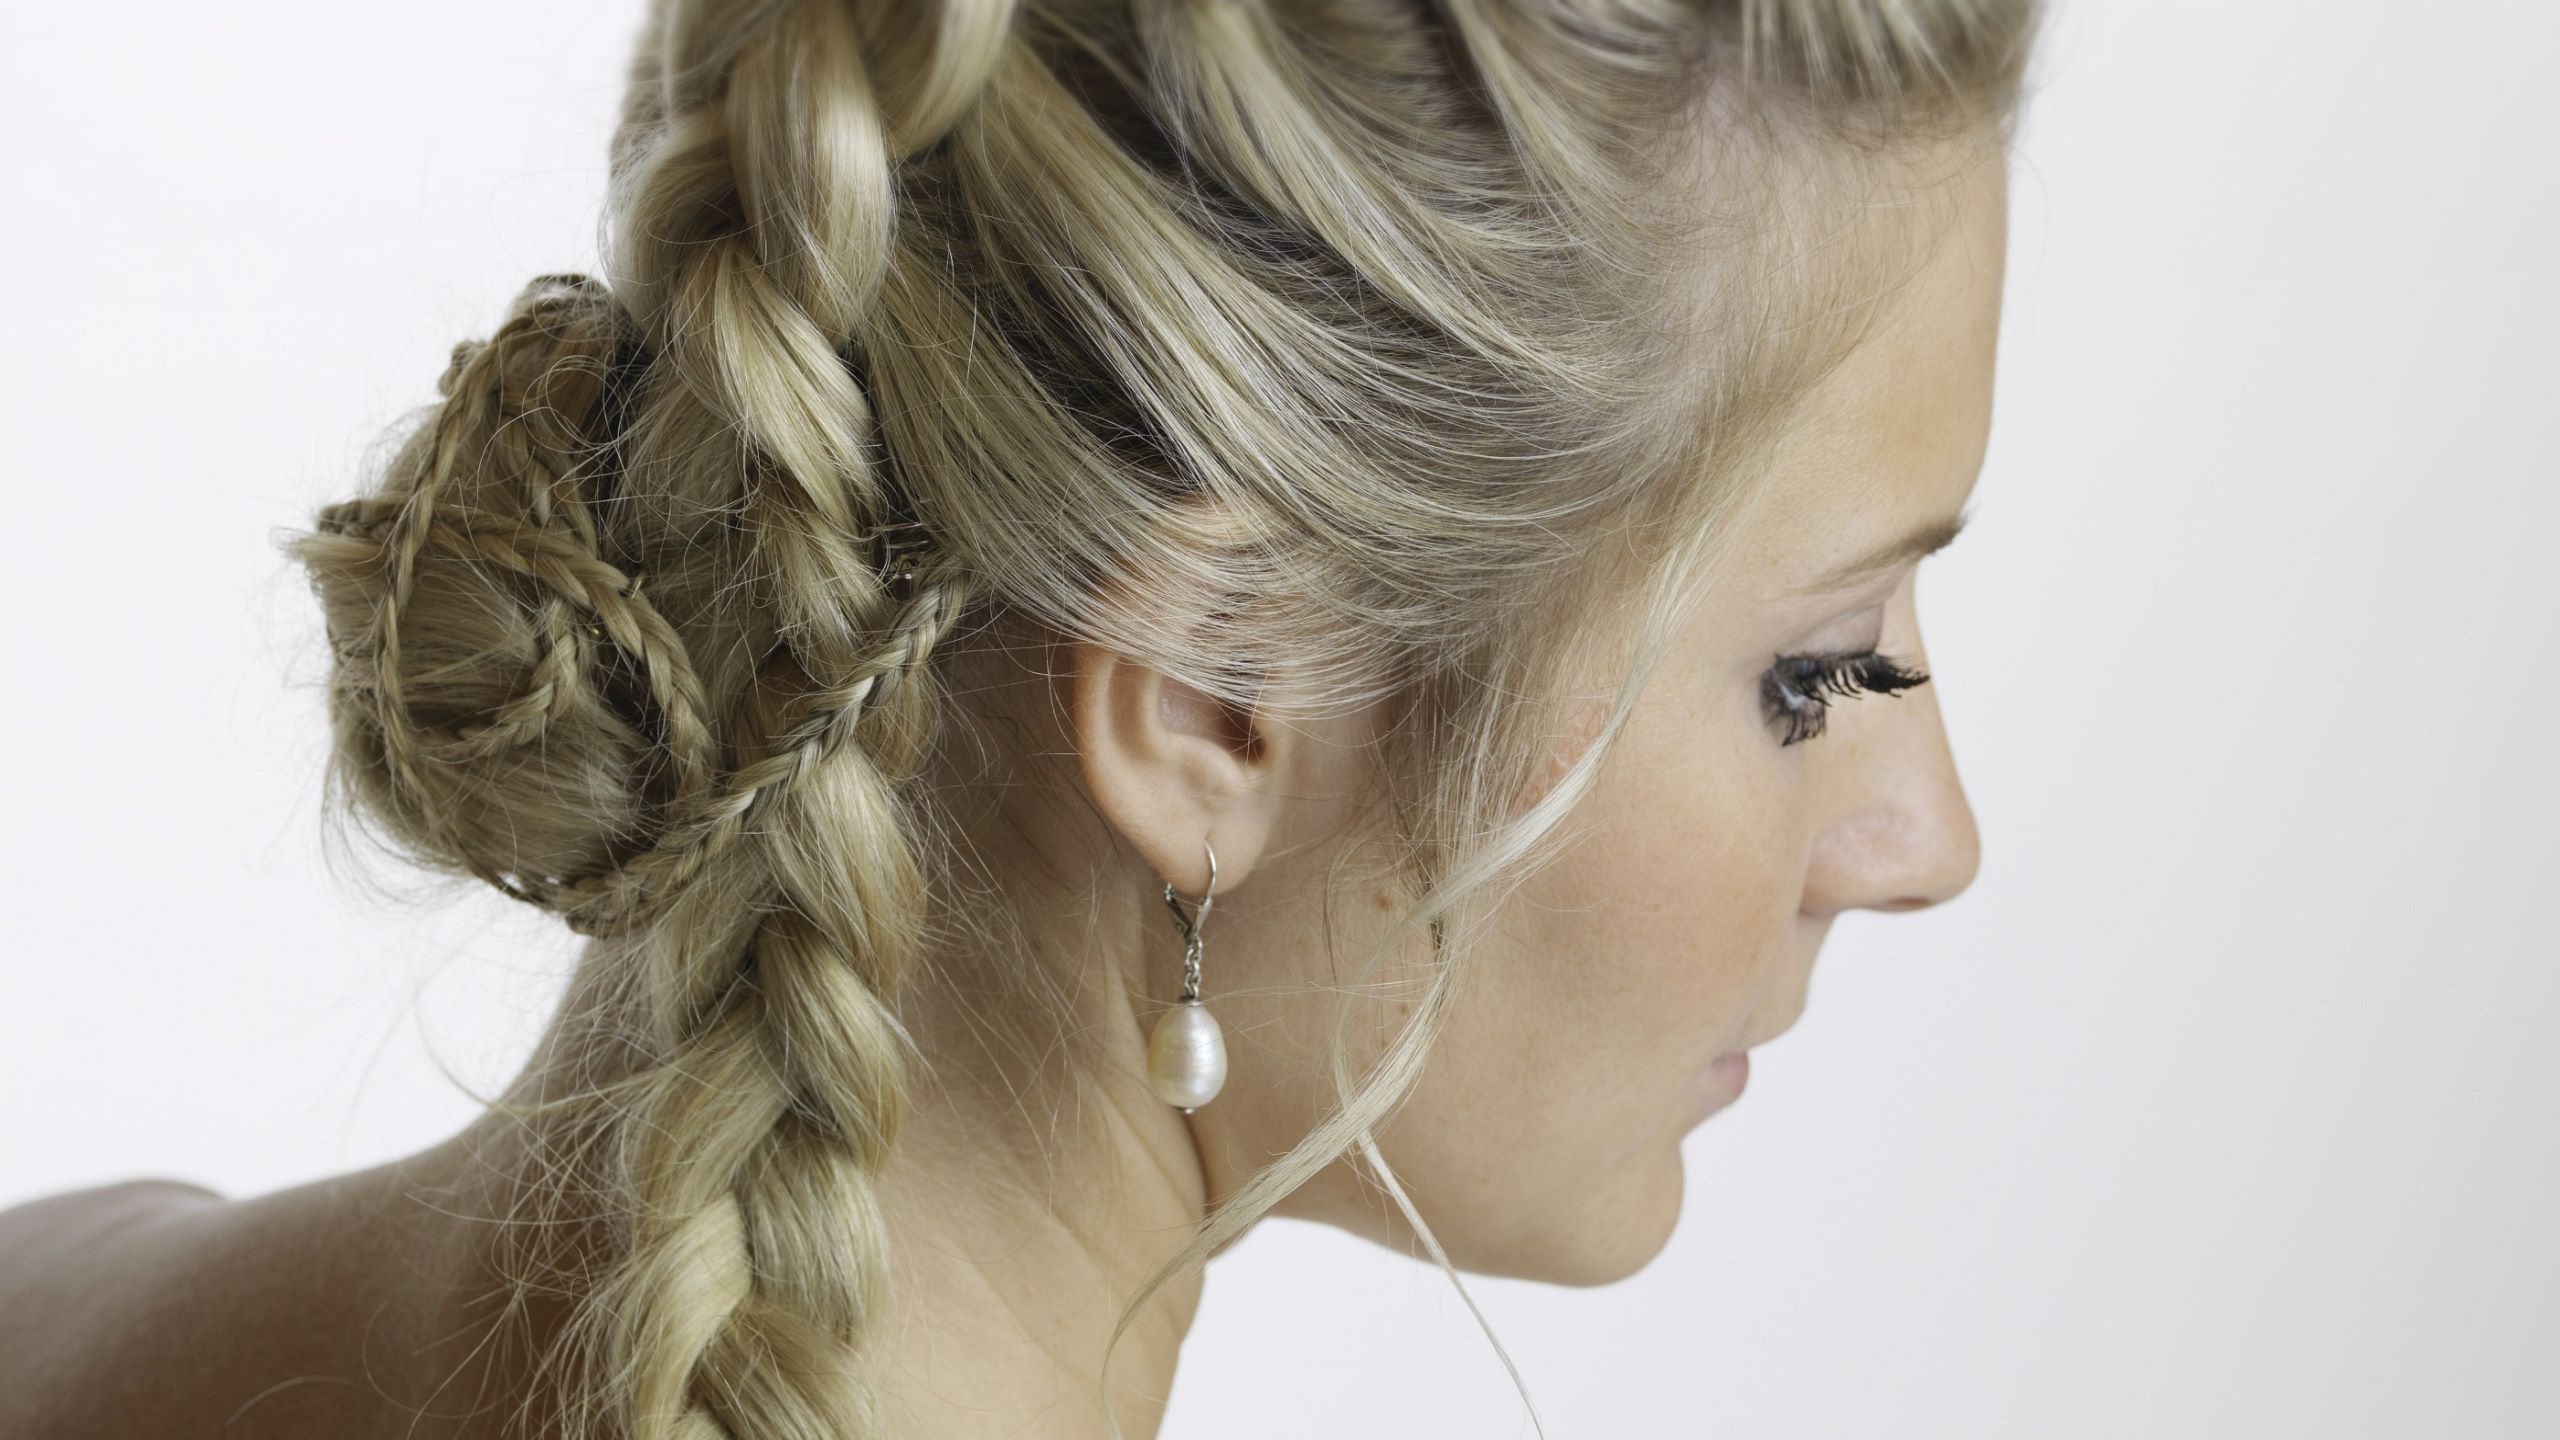 Well Known Whirlpool Braid Hairstyles Regarding The Hairdressing Salon (View 18 of 20)